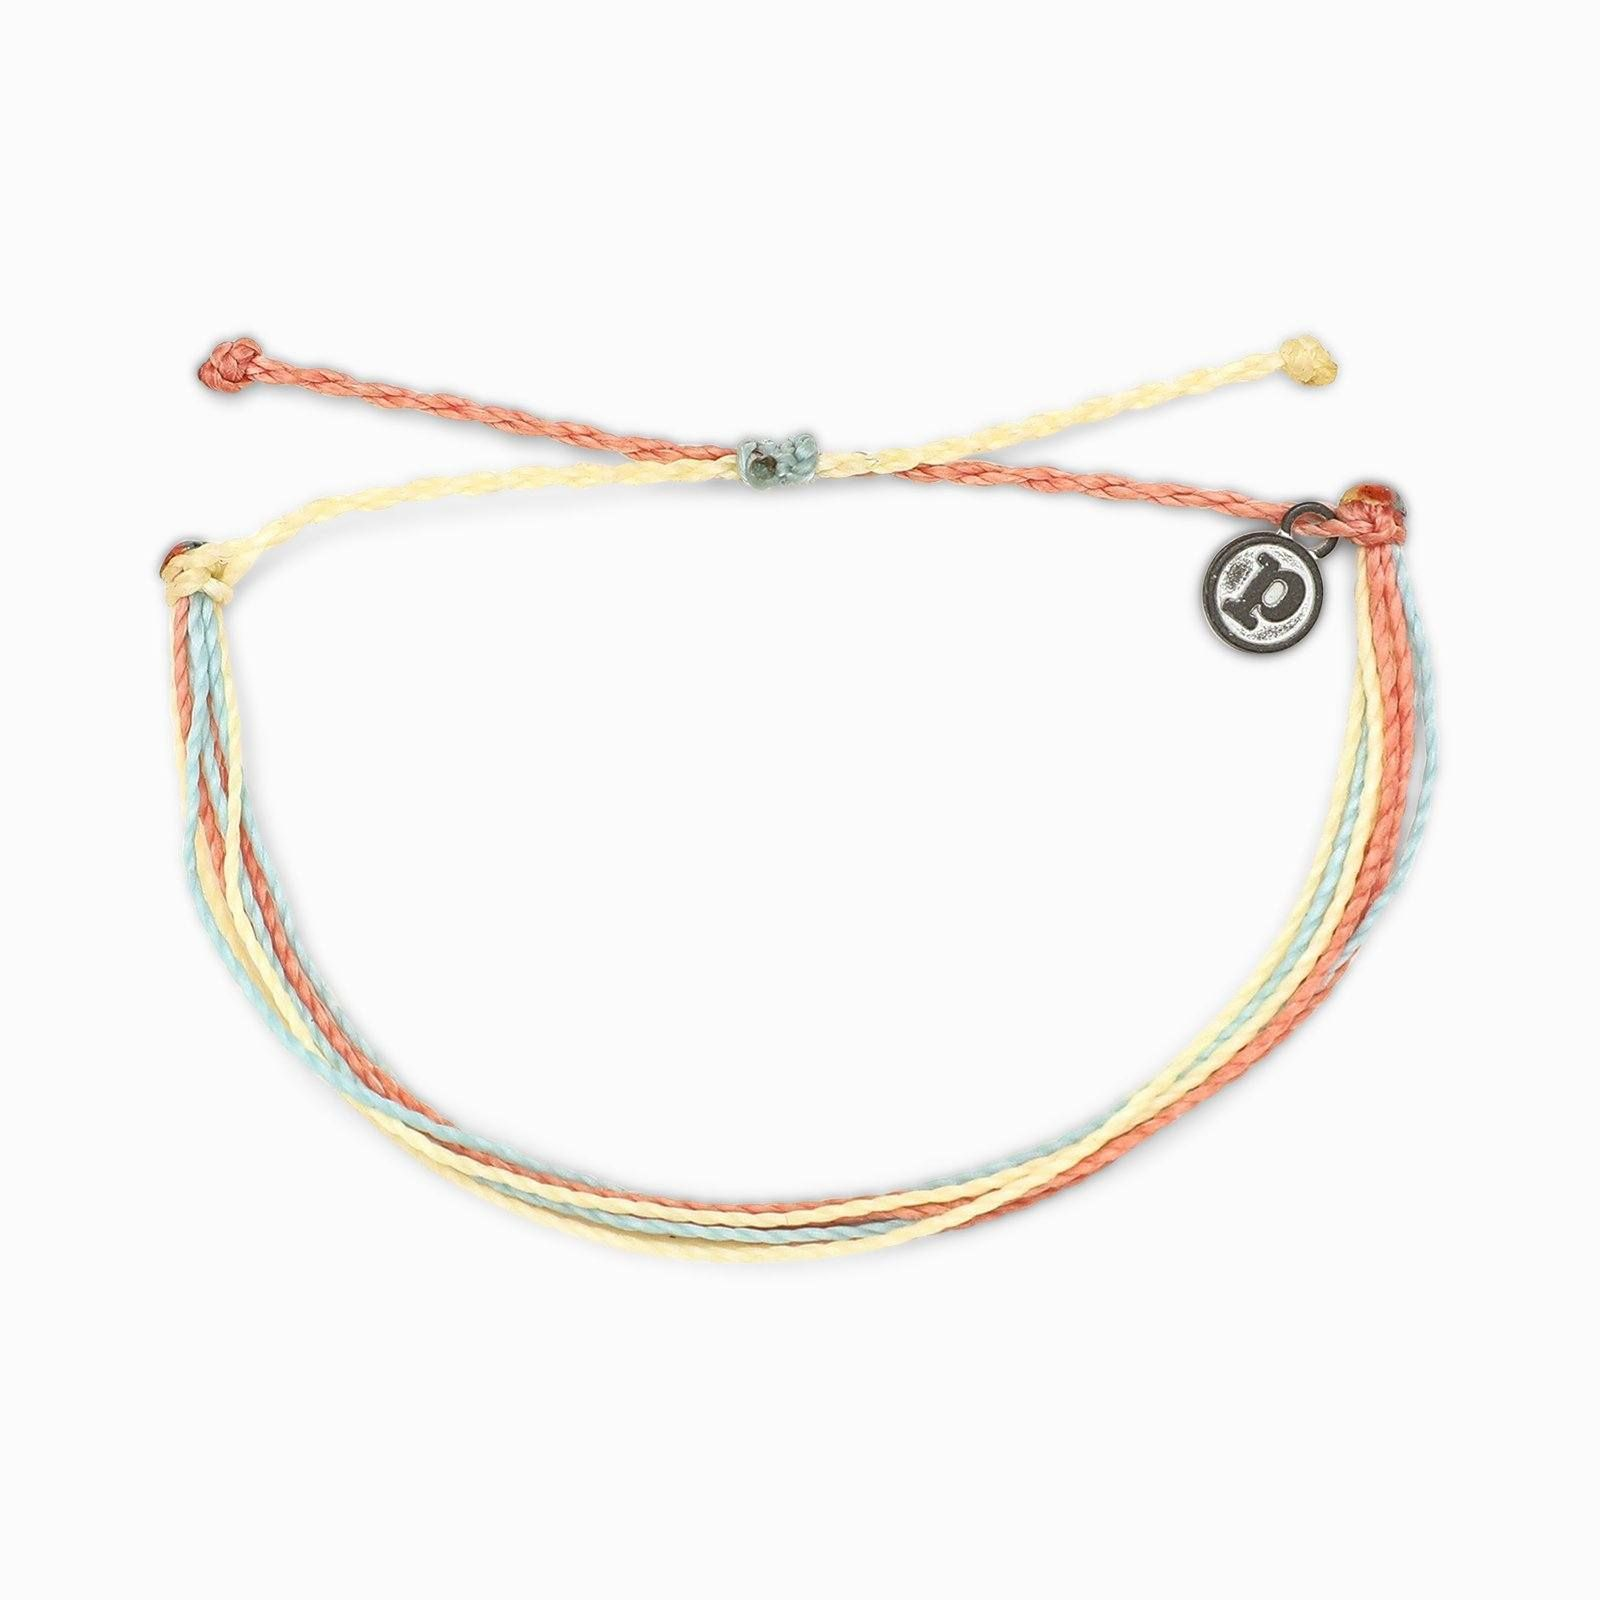 with Iron-Coated Accessories Wax-Coated with Charm 100/% Waterproof Pura Vida Anklets